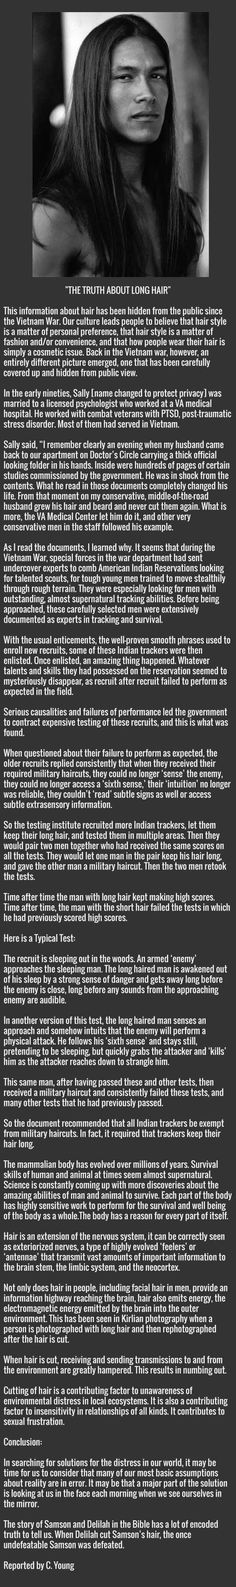 An eye-opening truth about long hair which may surprise you...  Not sure what I think of this but it is interesting